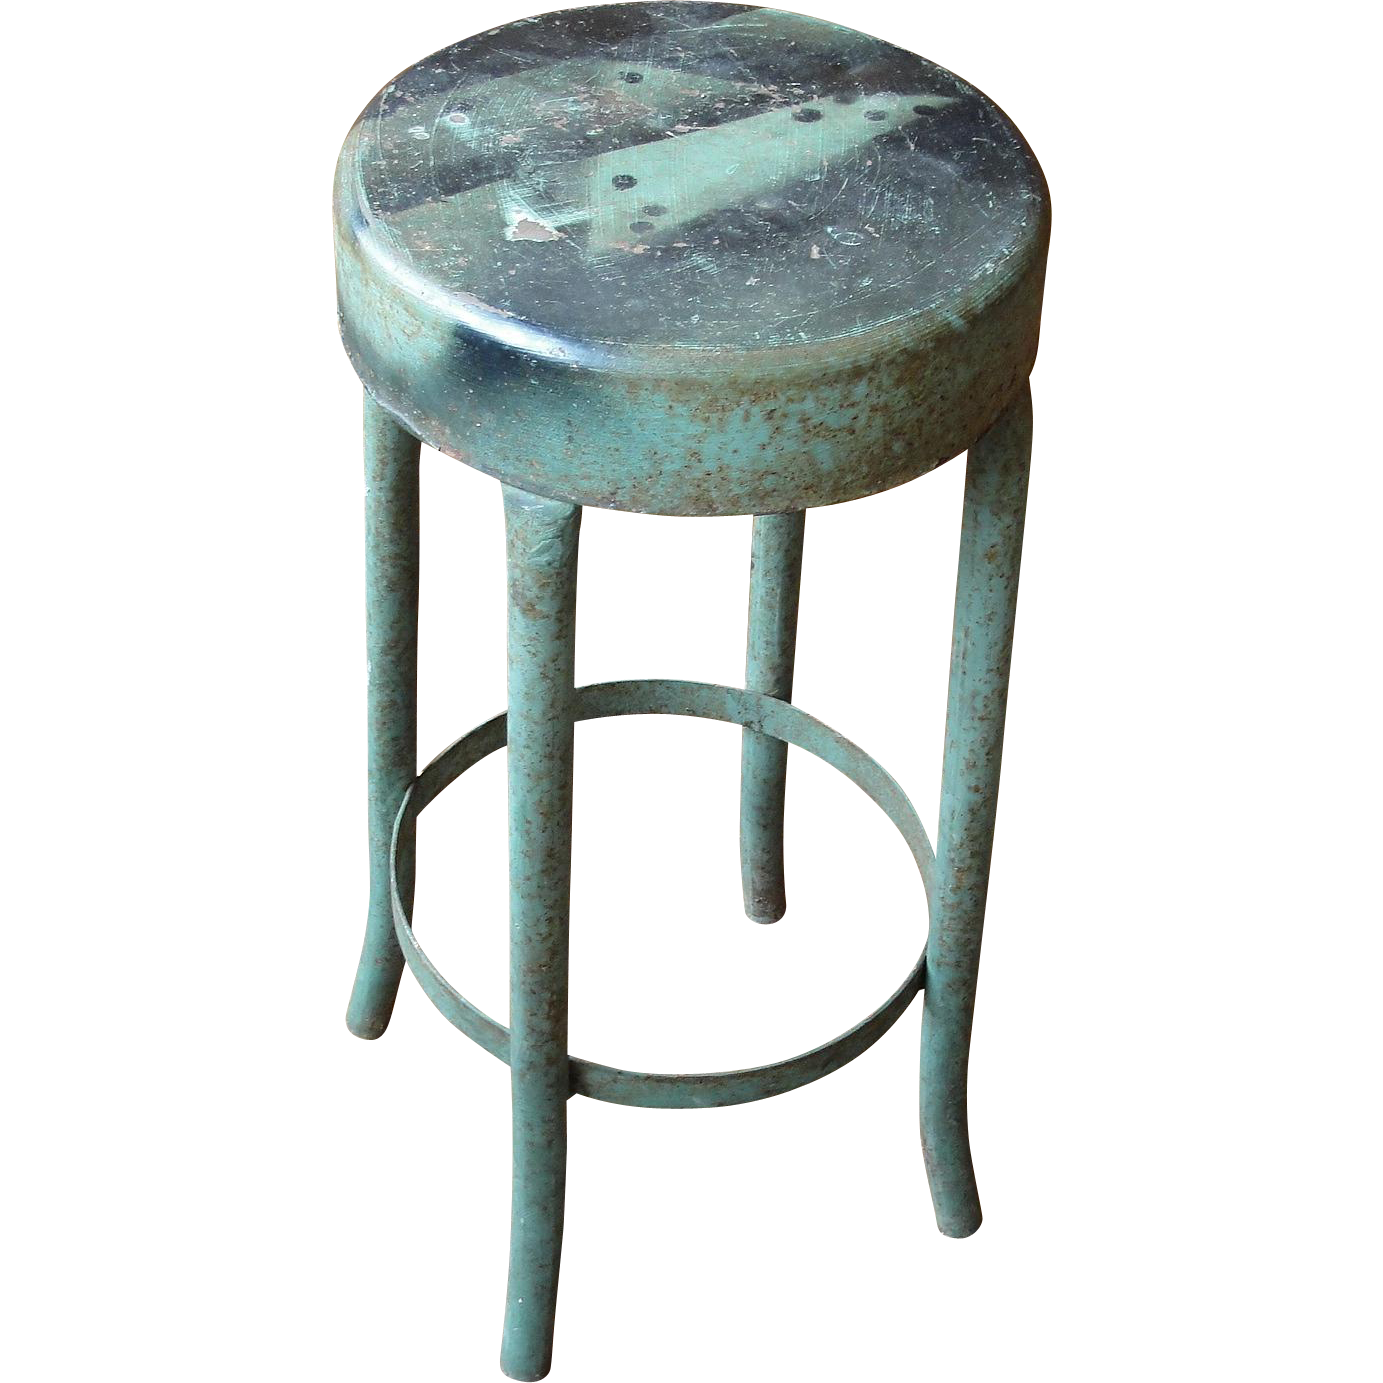 Vintage Industrial Salvage Green Metal Stool  sc 1 st  Ruby Lane : vintage metal stool - islam-shia.org